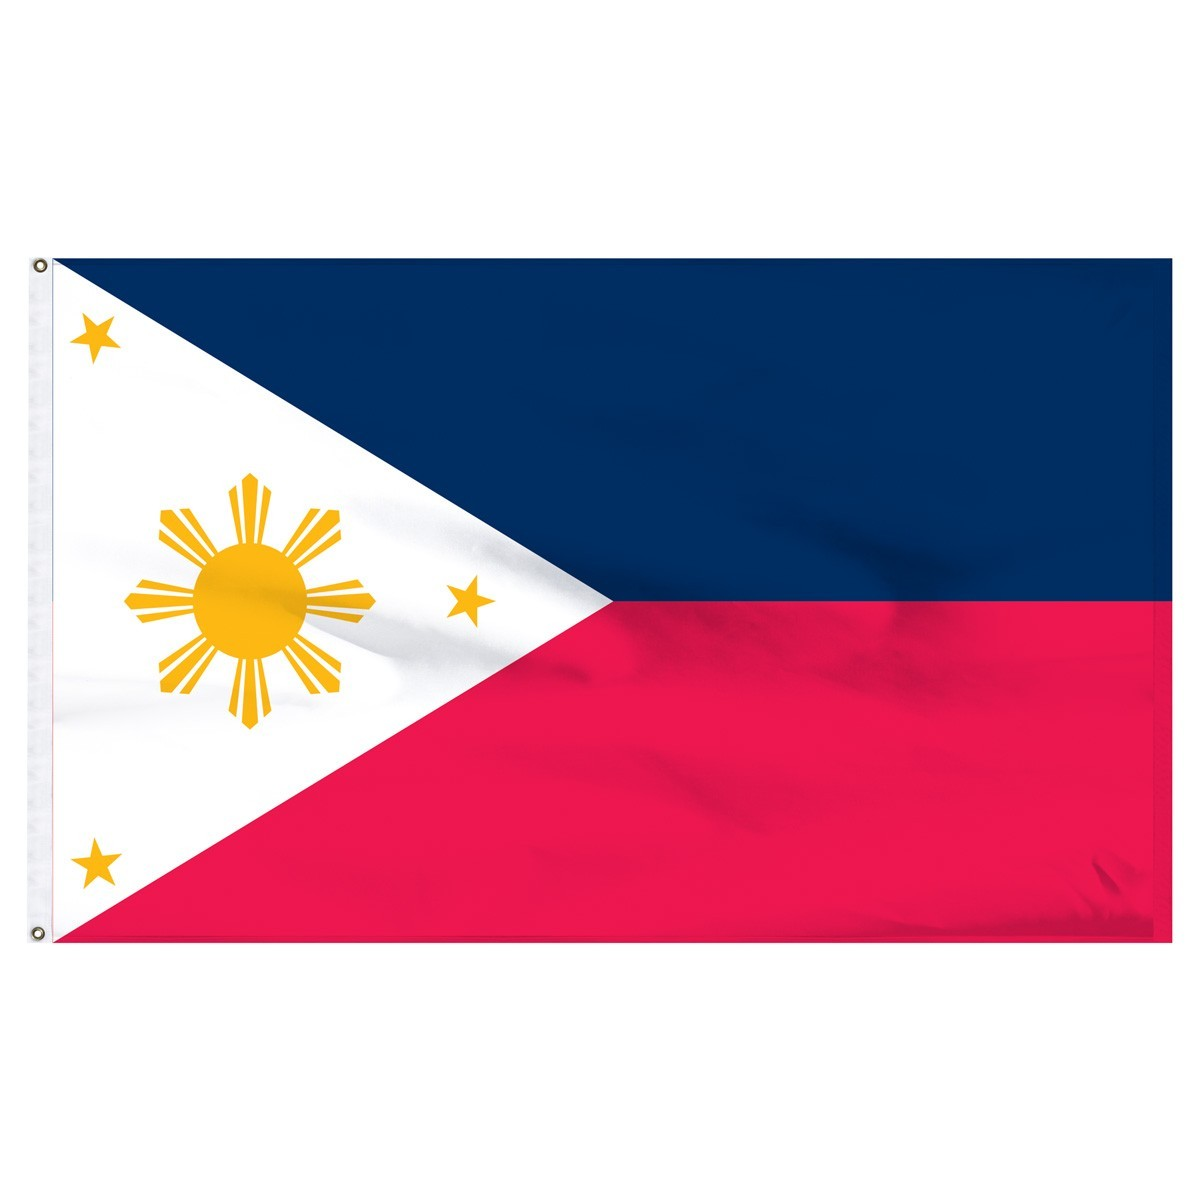 Philippines 3' x 5' Outdoor Nylon Flag